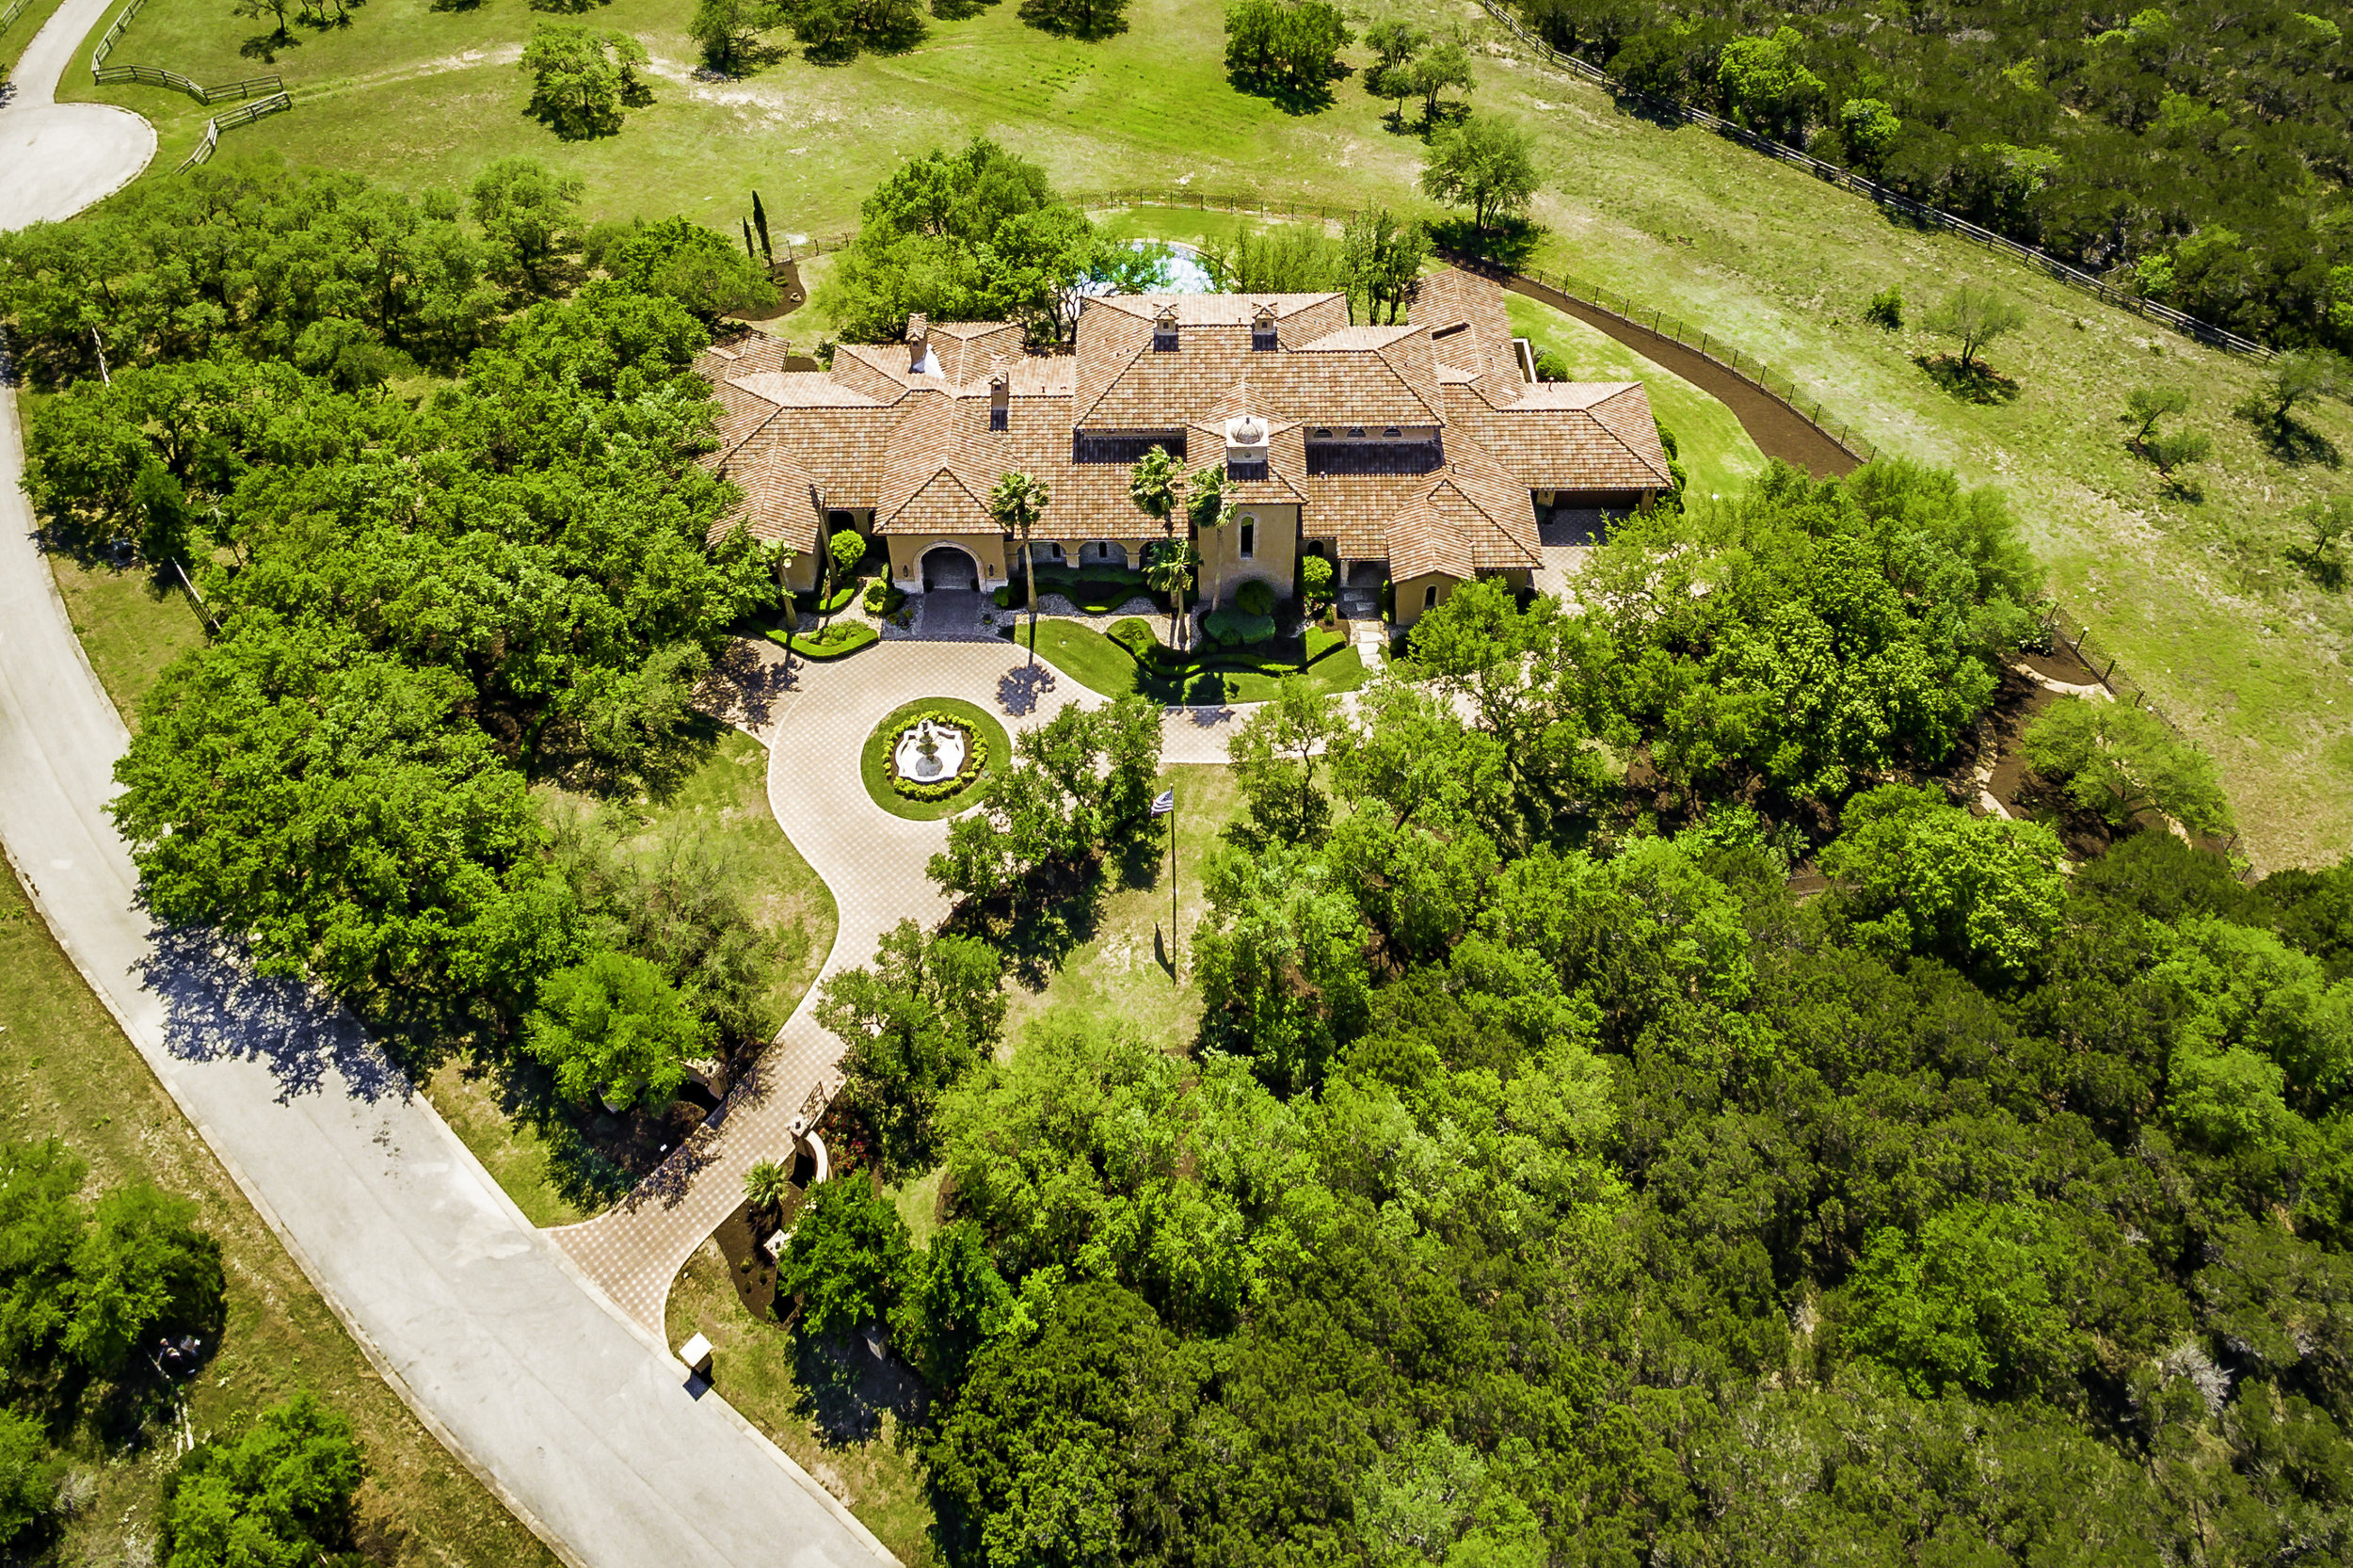 2502 Dominion Hill Aerial - Valerie DiFabio - April 2019-6.jpg